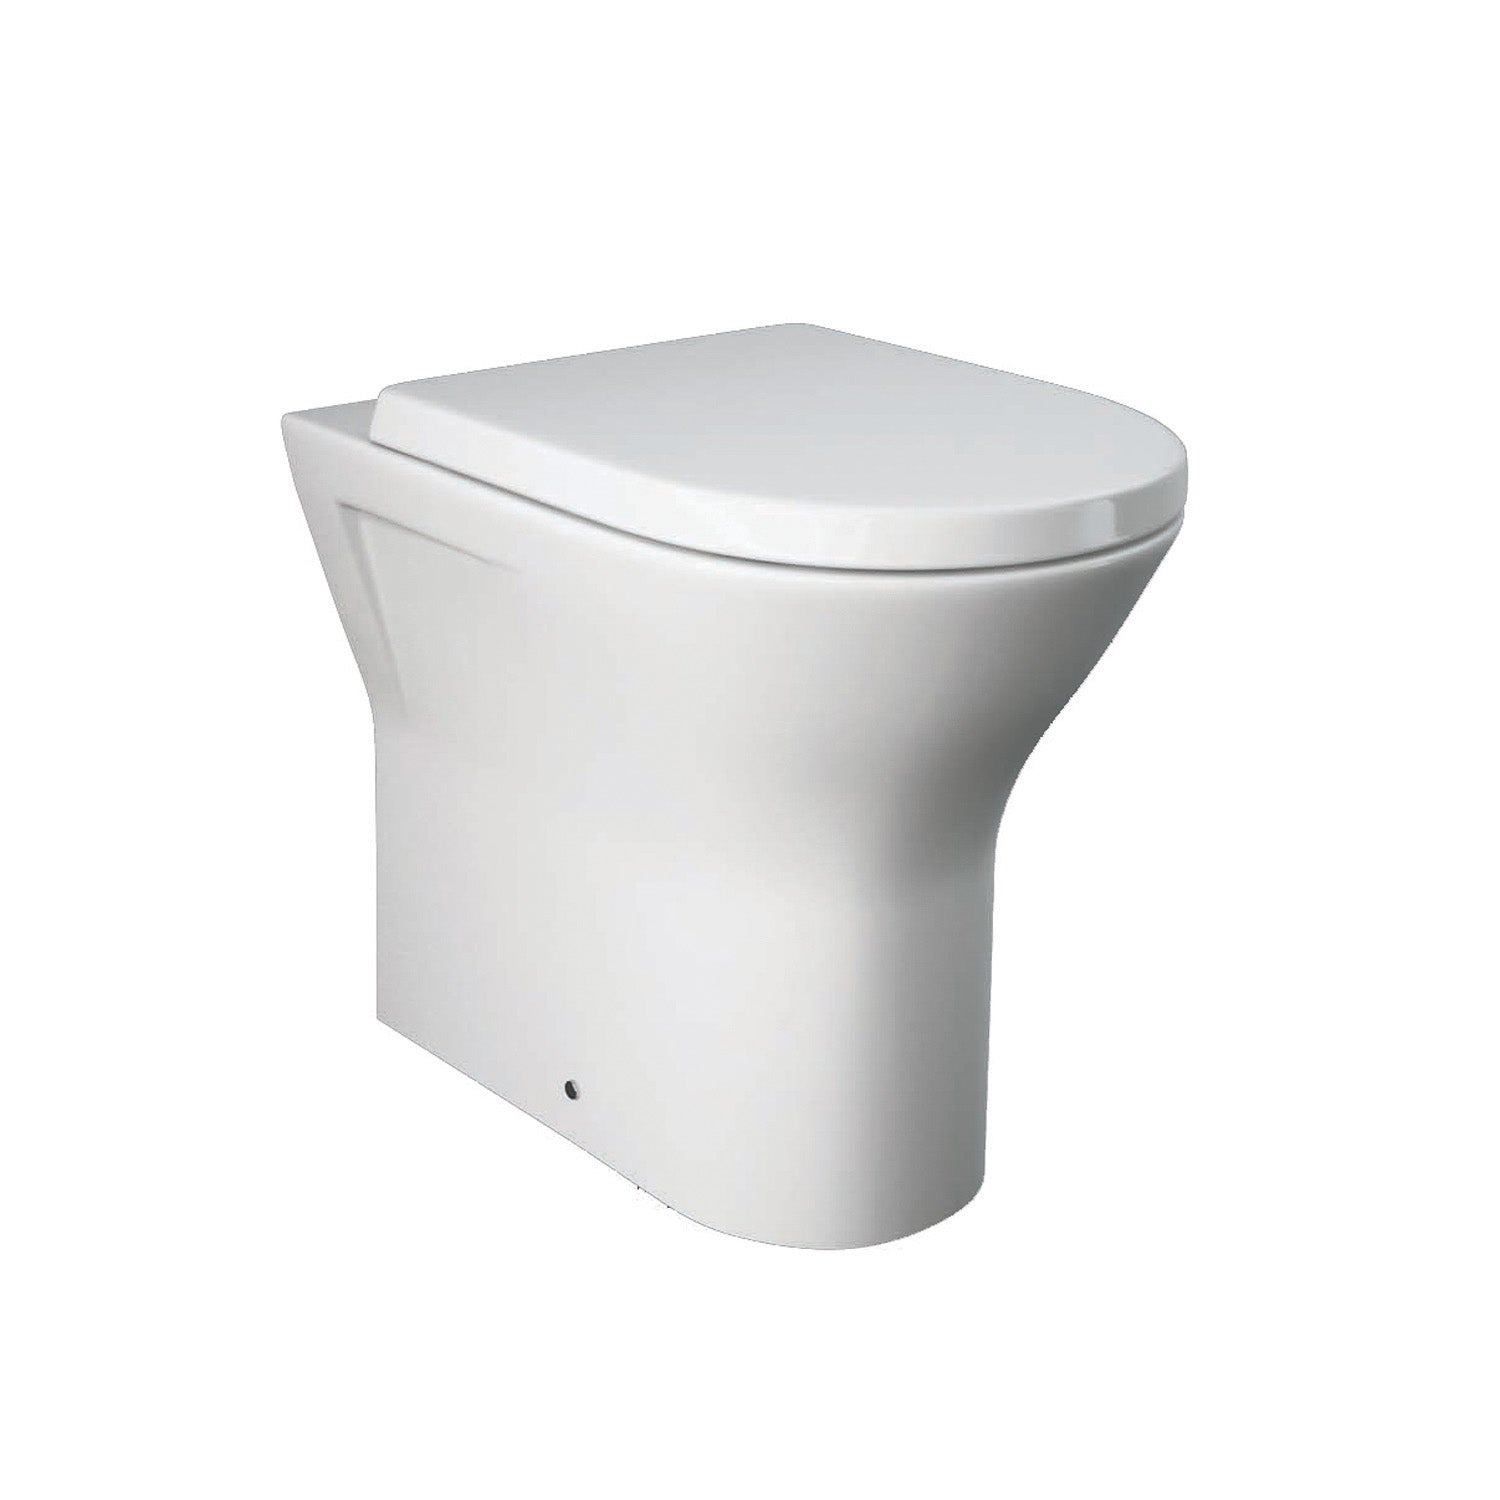 450mm Vesta Comfort Height Back to Wall Toilet with a seat and cover on a white background